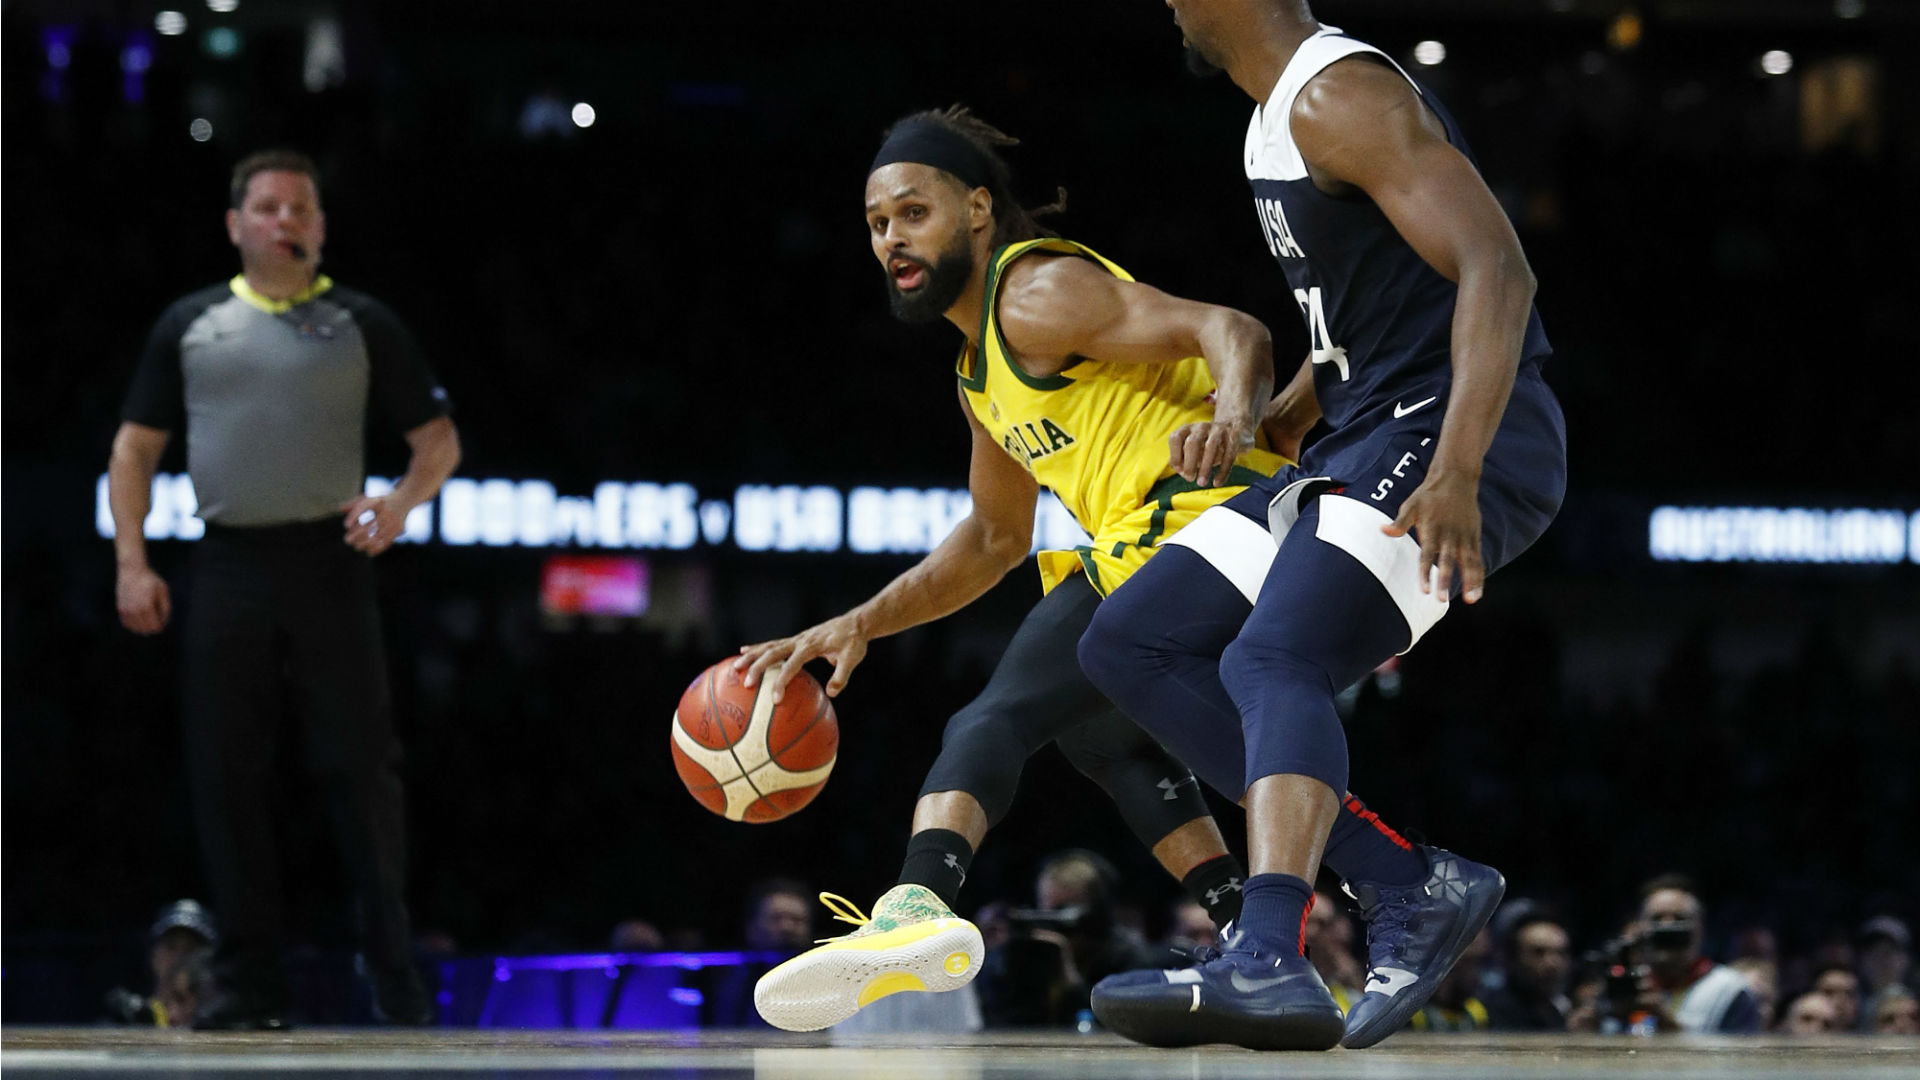 Boomers to build on USA win - Mills